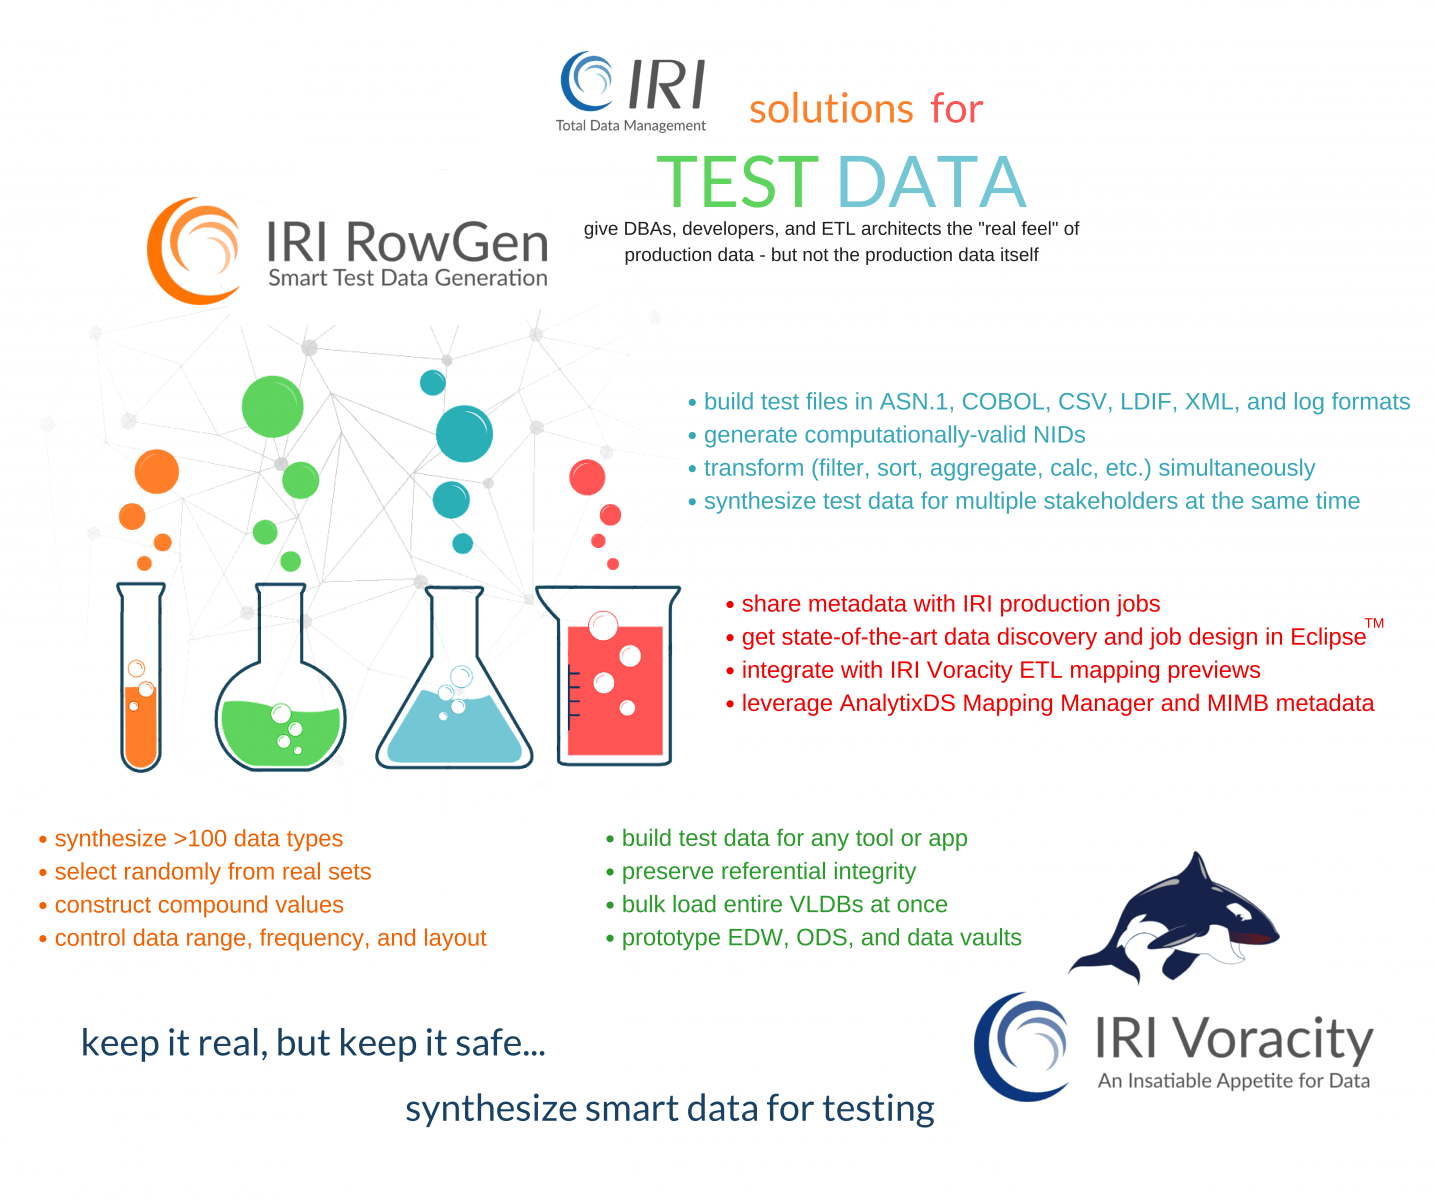 IRI solutions for creation of realistic but inauthentic test data